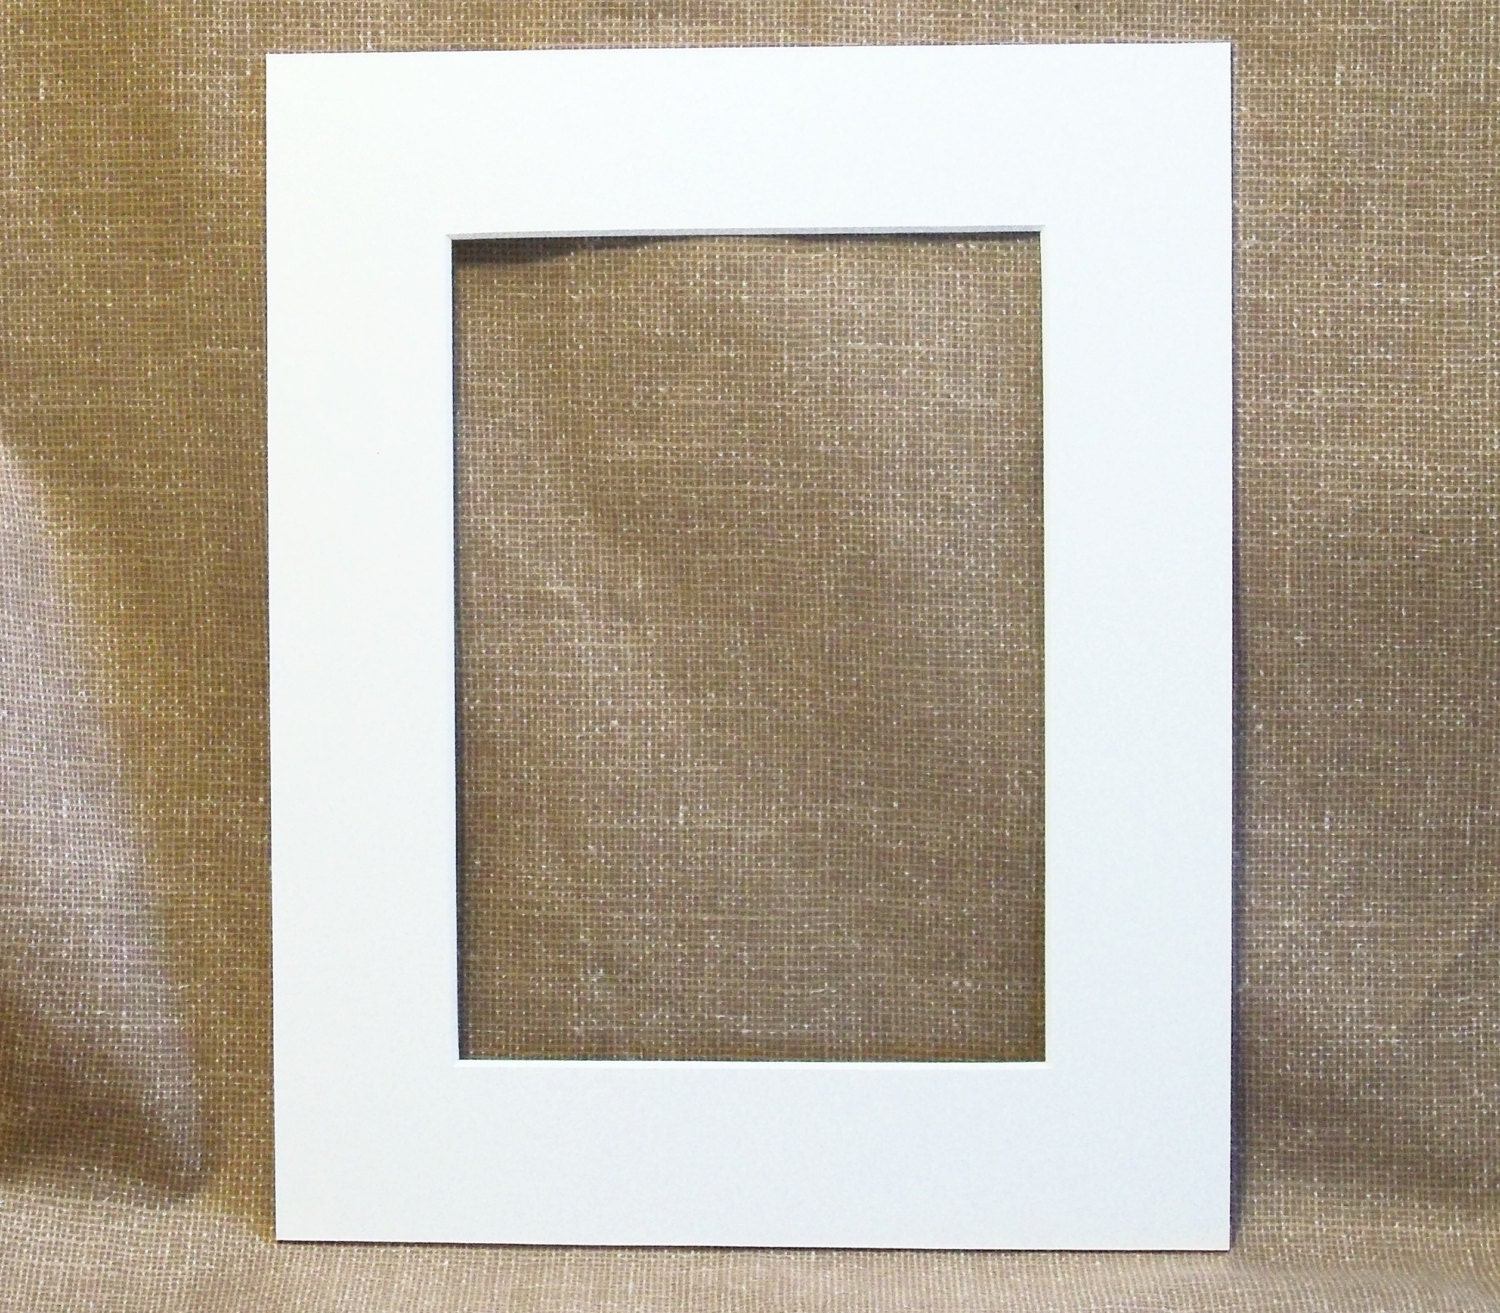 Mat White To Fit 8 X 10 Frame Cut For A 5x7